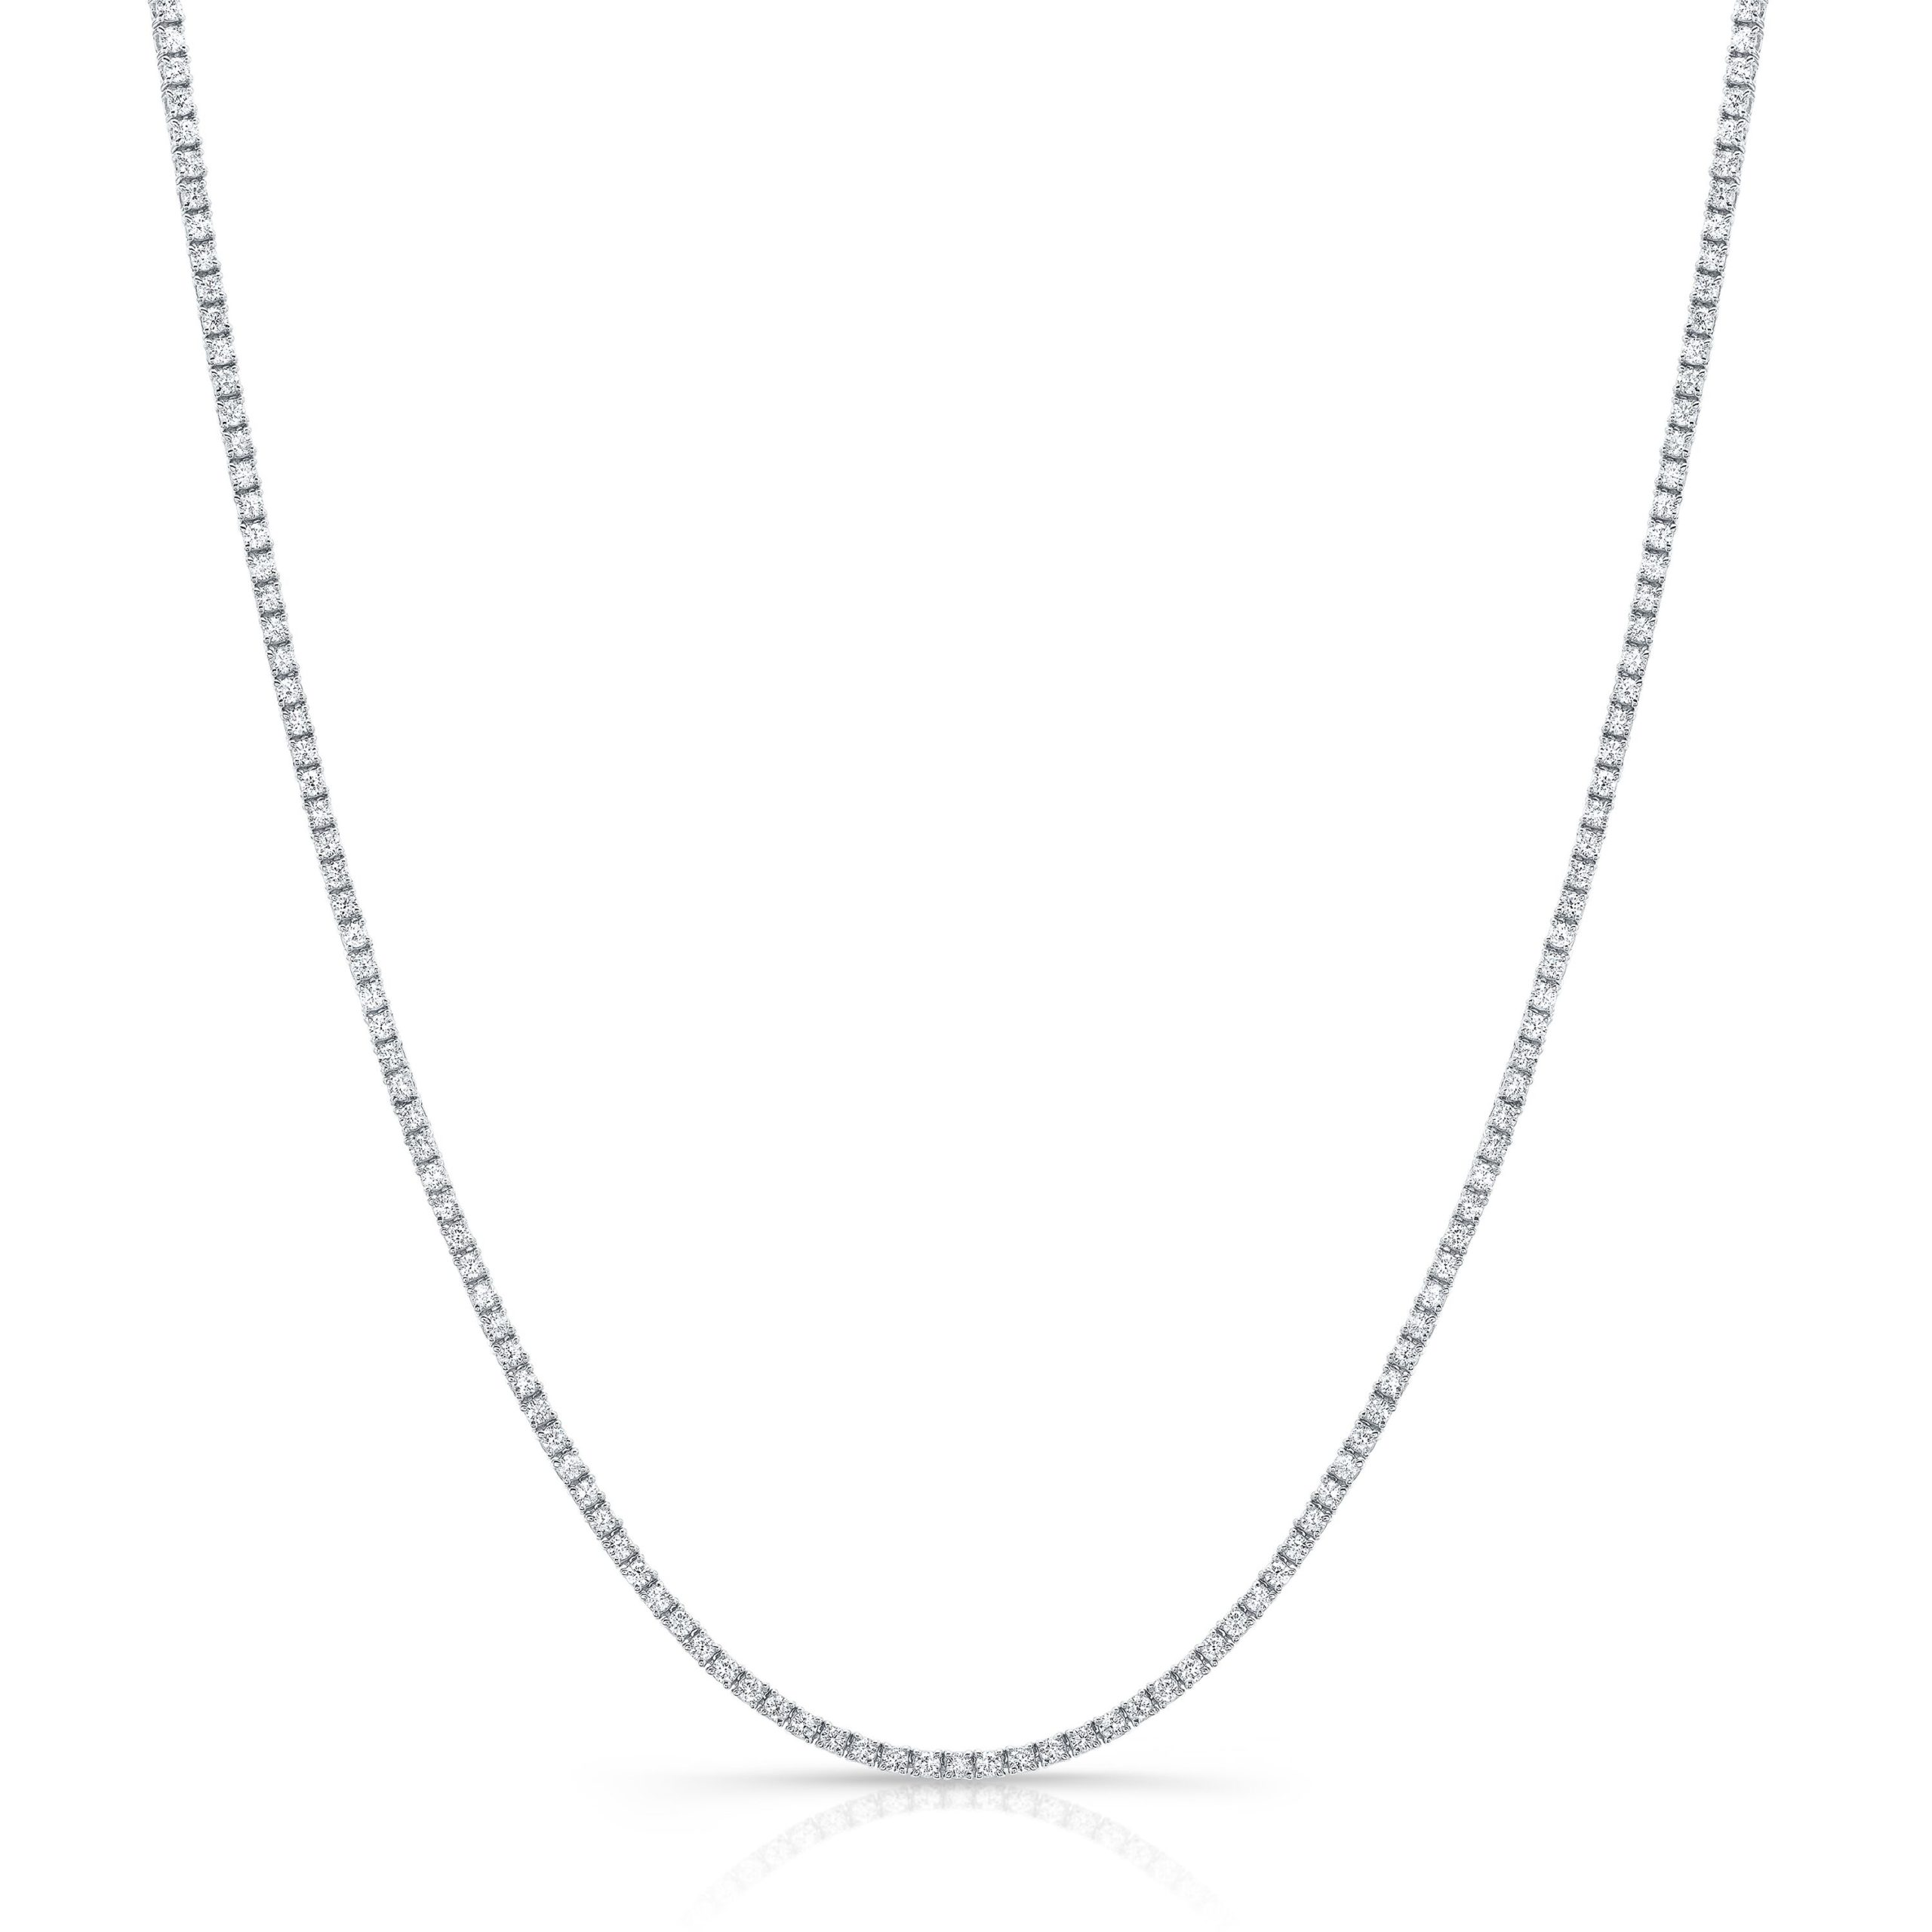 4.03ct Diamond Tennis Necklace